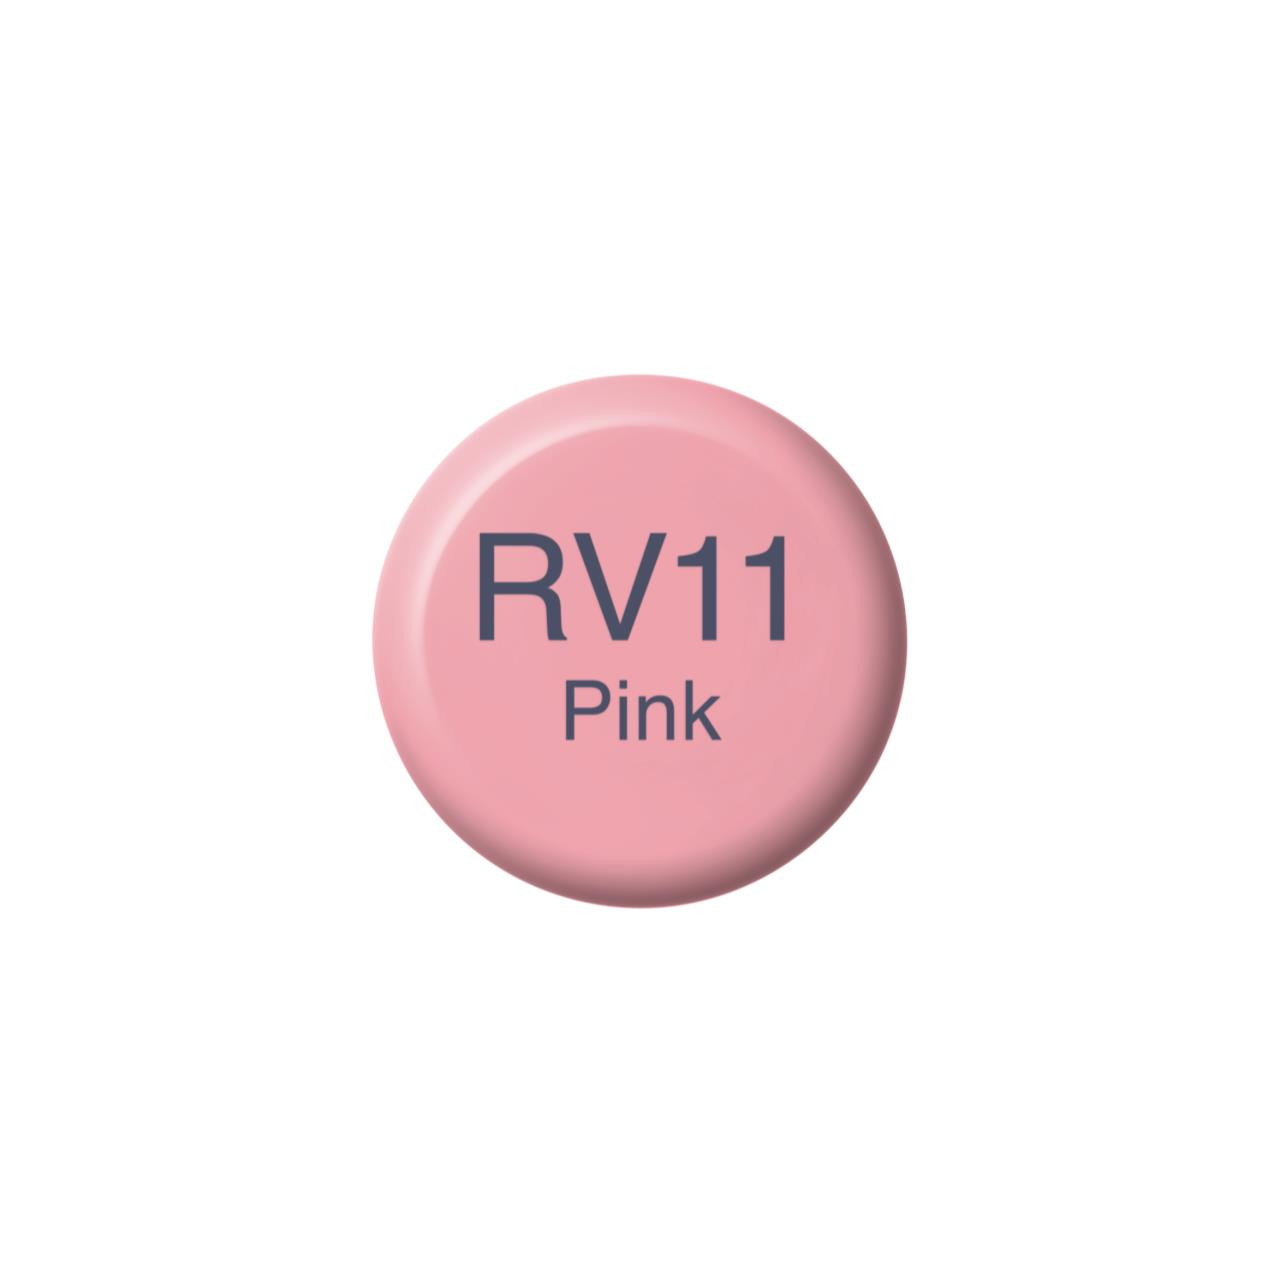 RV11 Pink, Copic Ink - 4511338057742